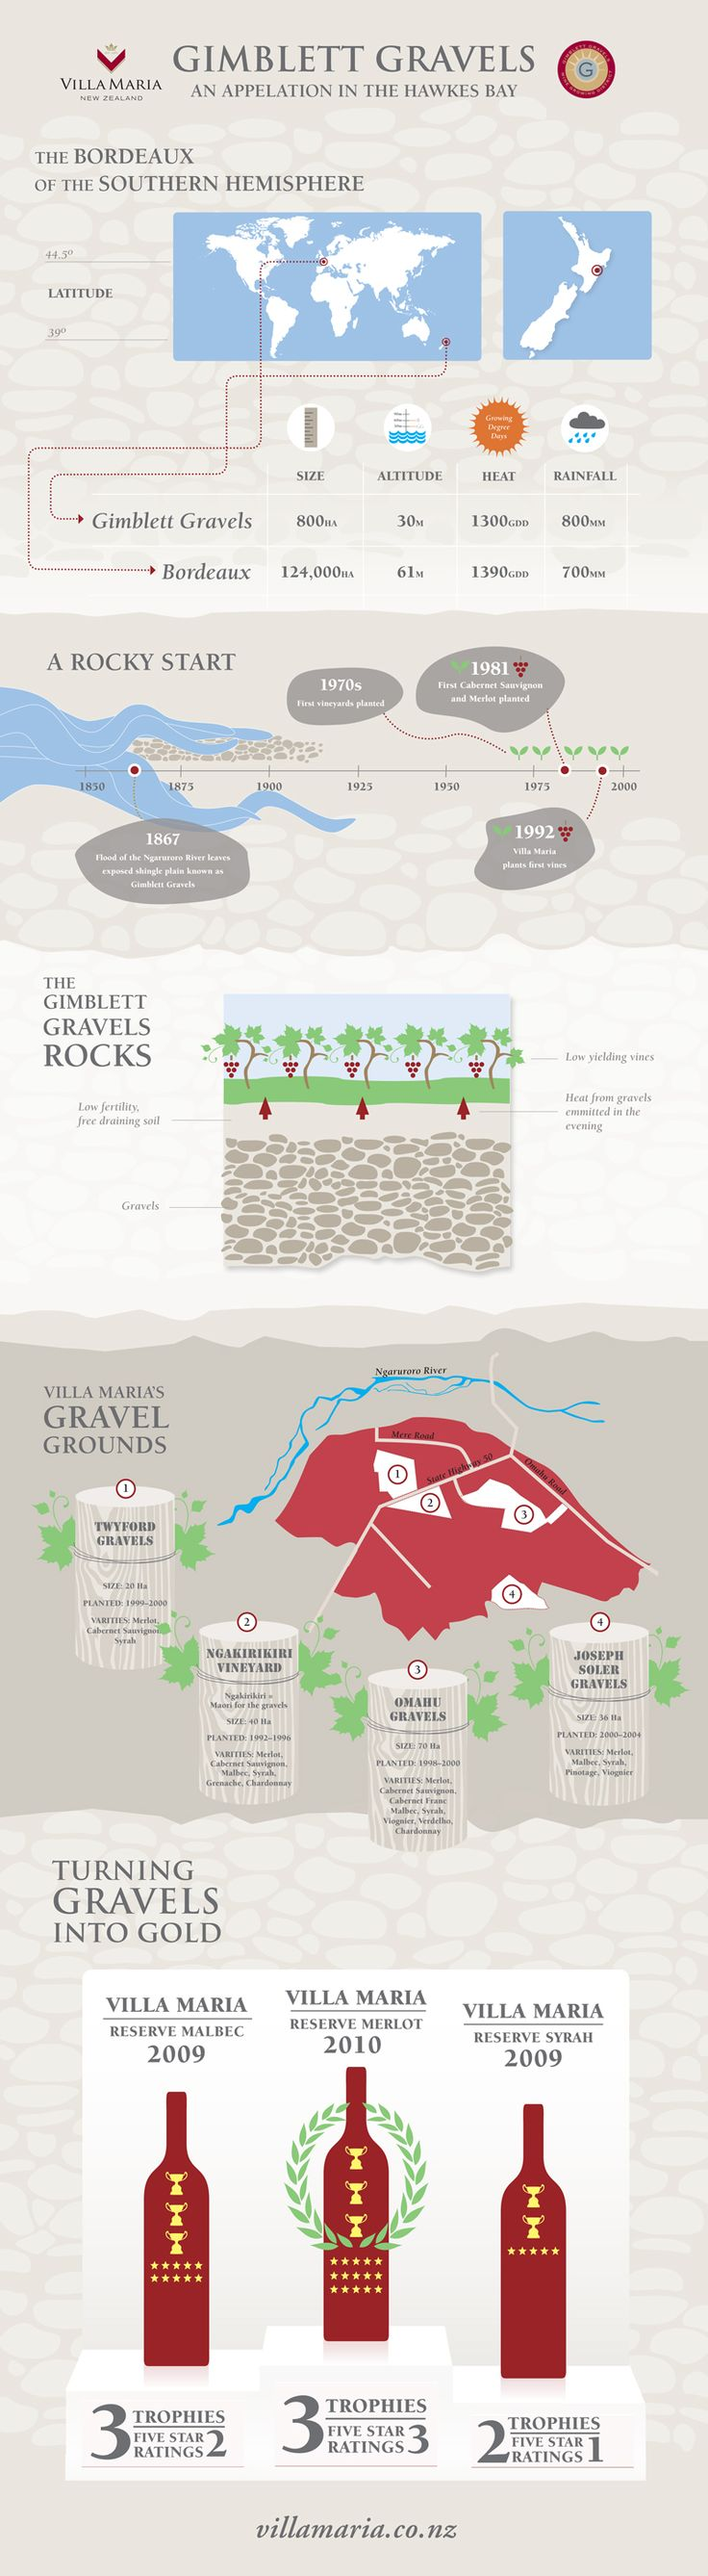 An infographic I designed for Villa Maria illustrating facts and figures on the famous Gimblett Gravels wine growing area in the Hawkes Bay, New Zealand.